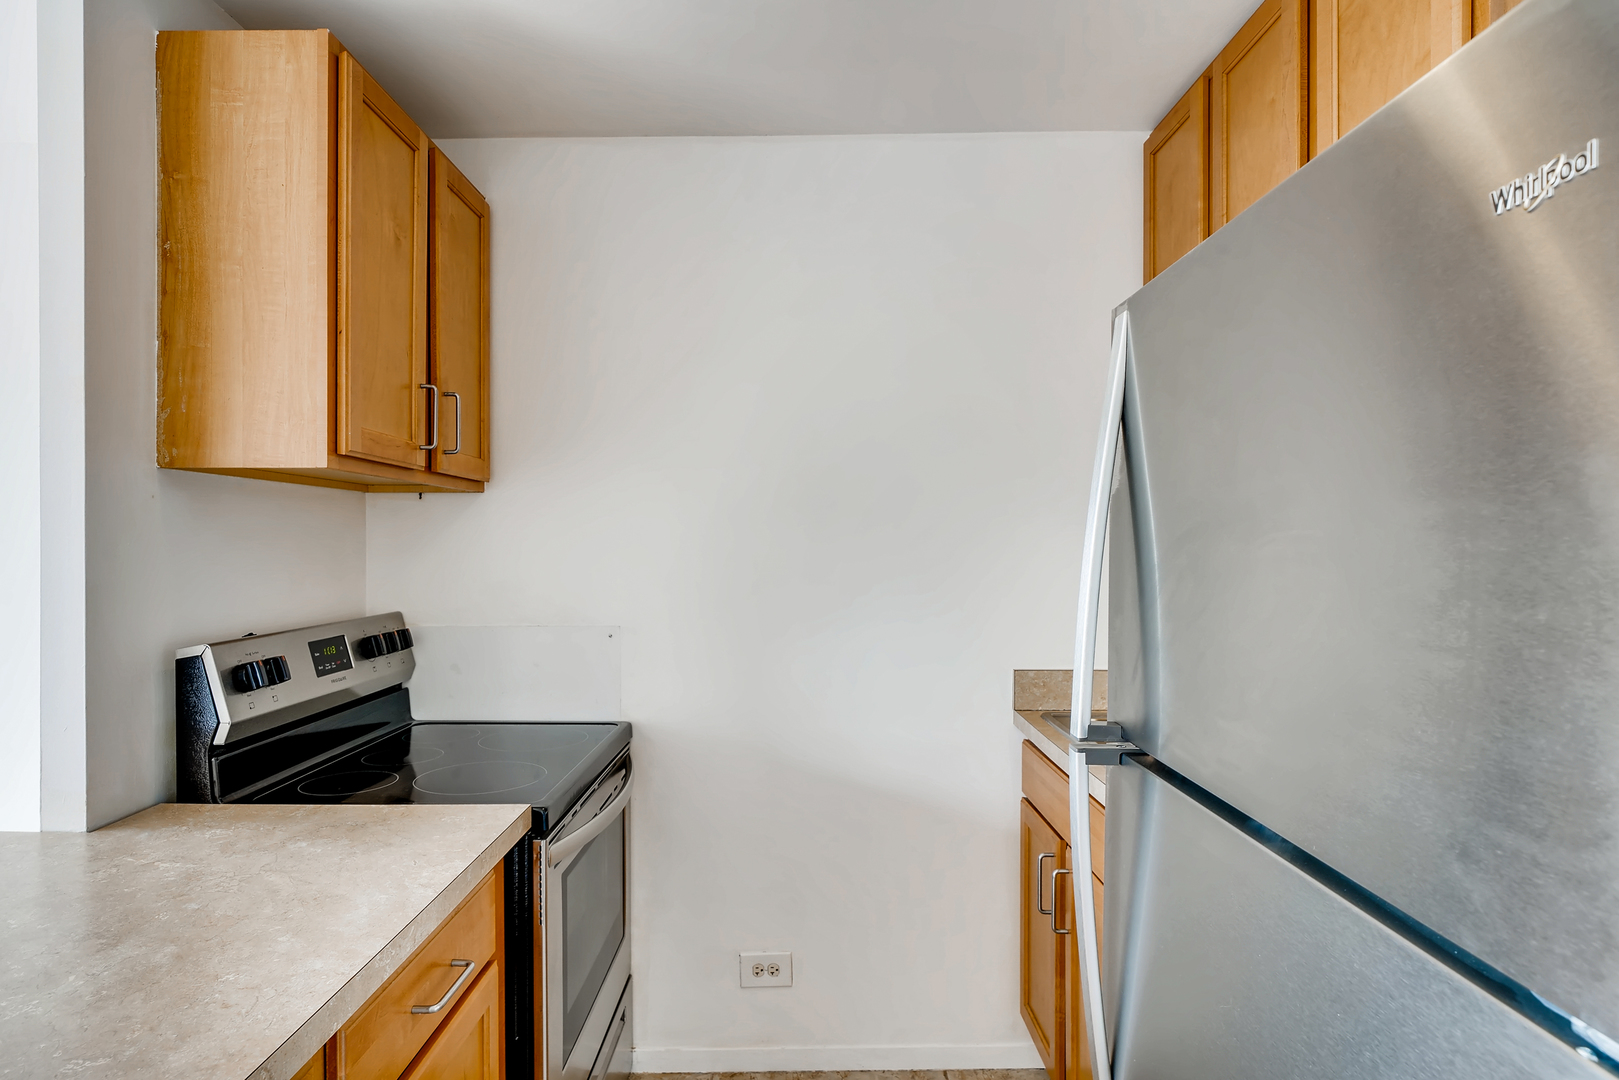 4343 Clarendon Unit Unit 901 ,Chicago, Illinois 60613